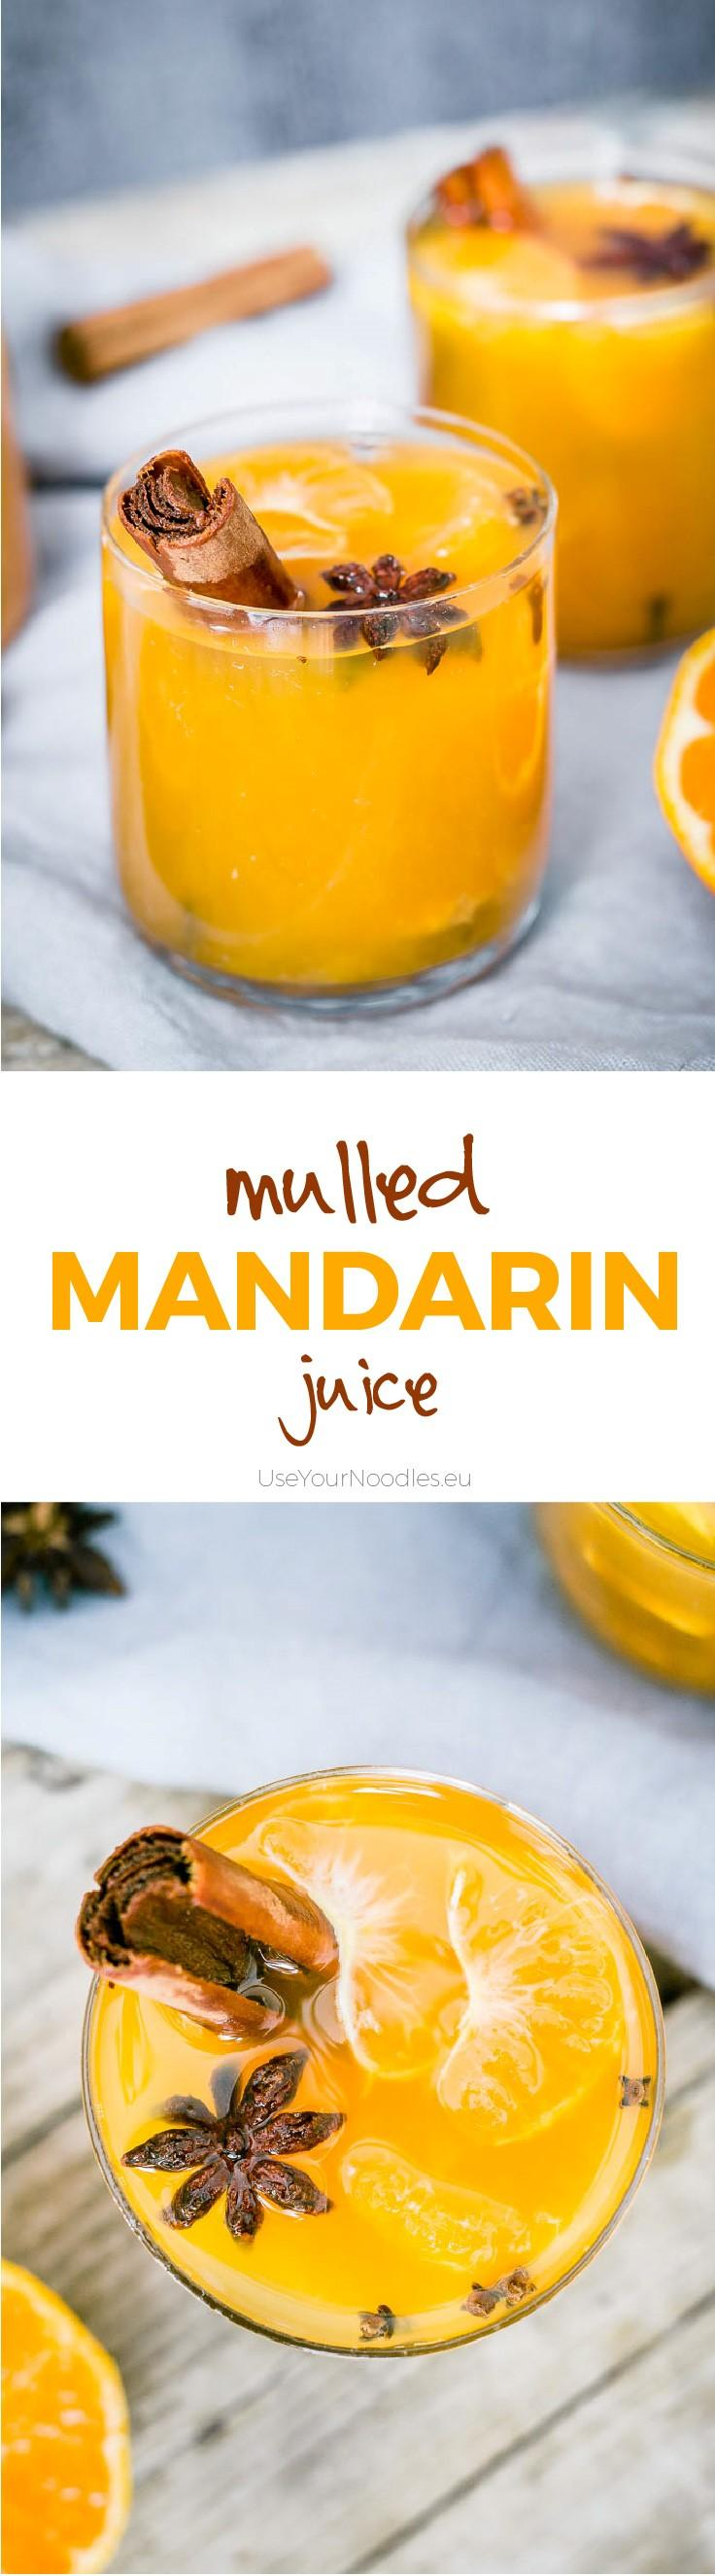 Easy to make from scratch warm autumn mulled mandarin juice! Click to find the whole recipe or pin and save for later!